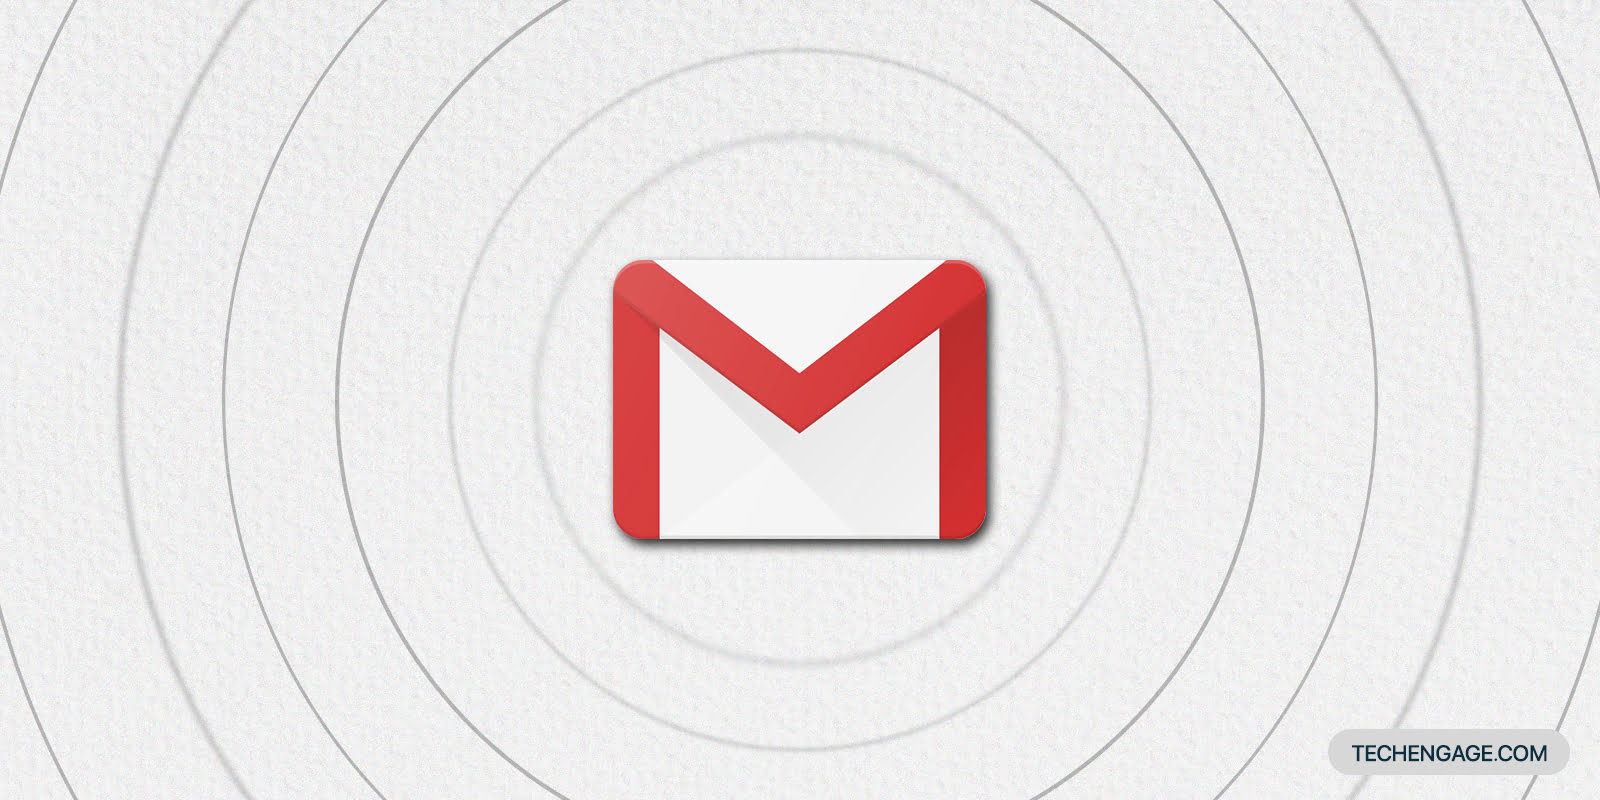 Google is bringing authenticated brand logos support to Gmail